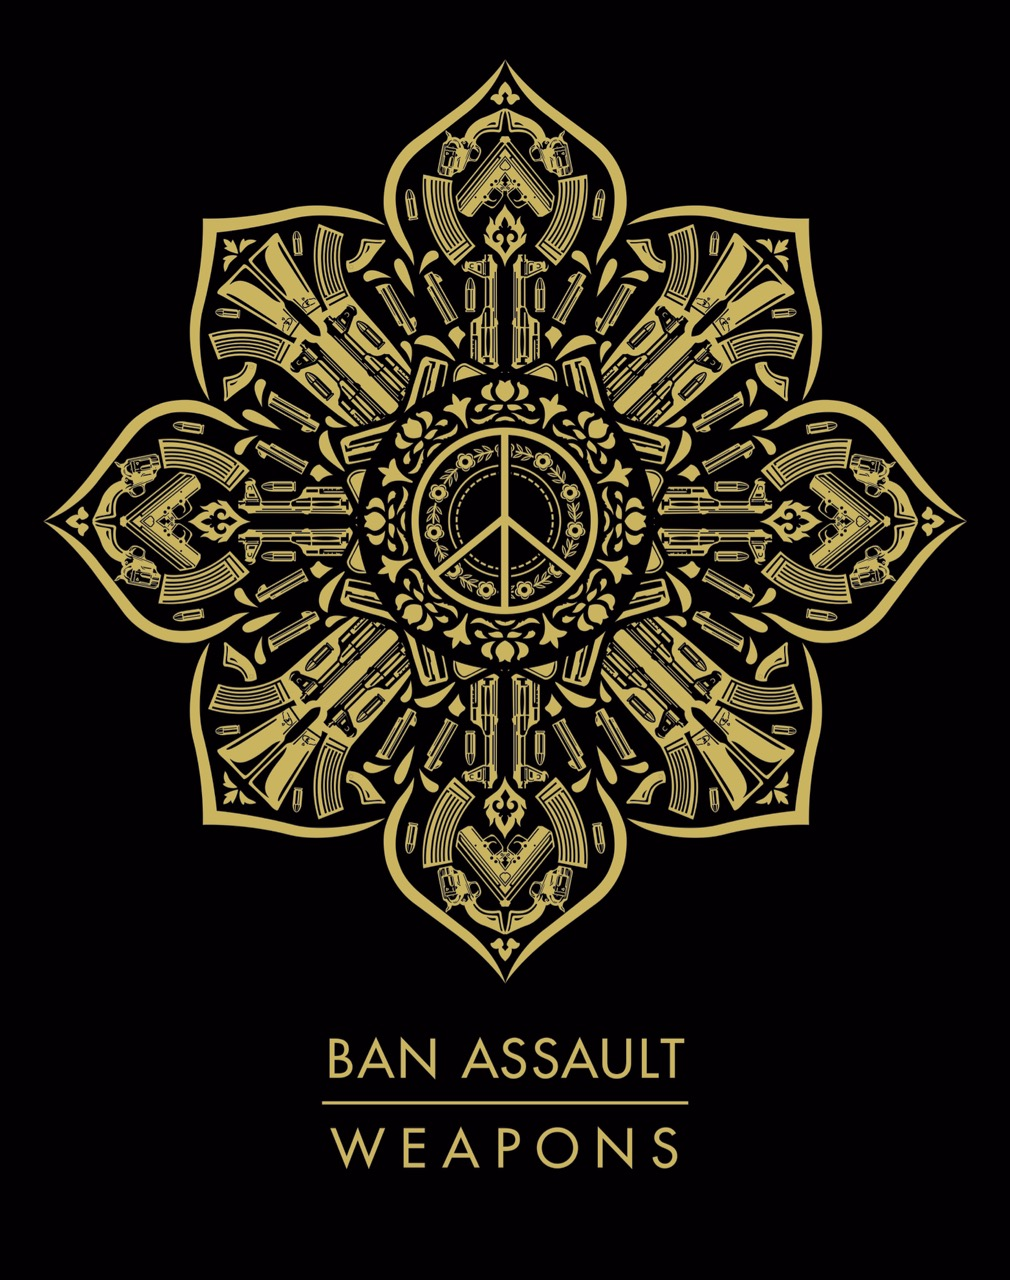 GUN MANDALA 2018 AMPLIFIER copy